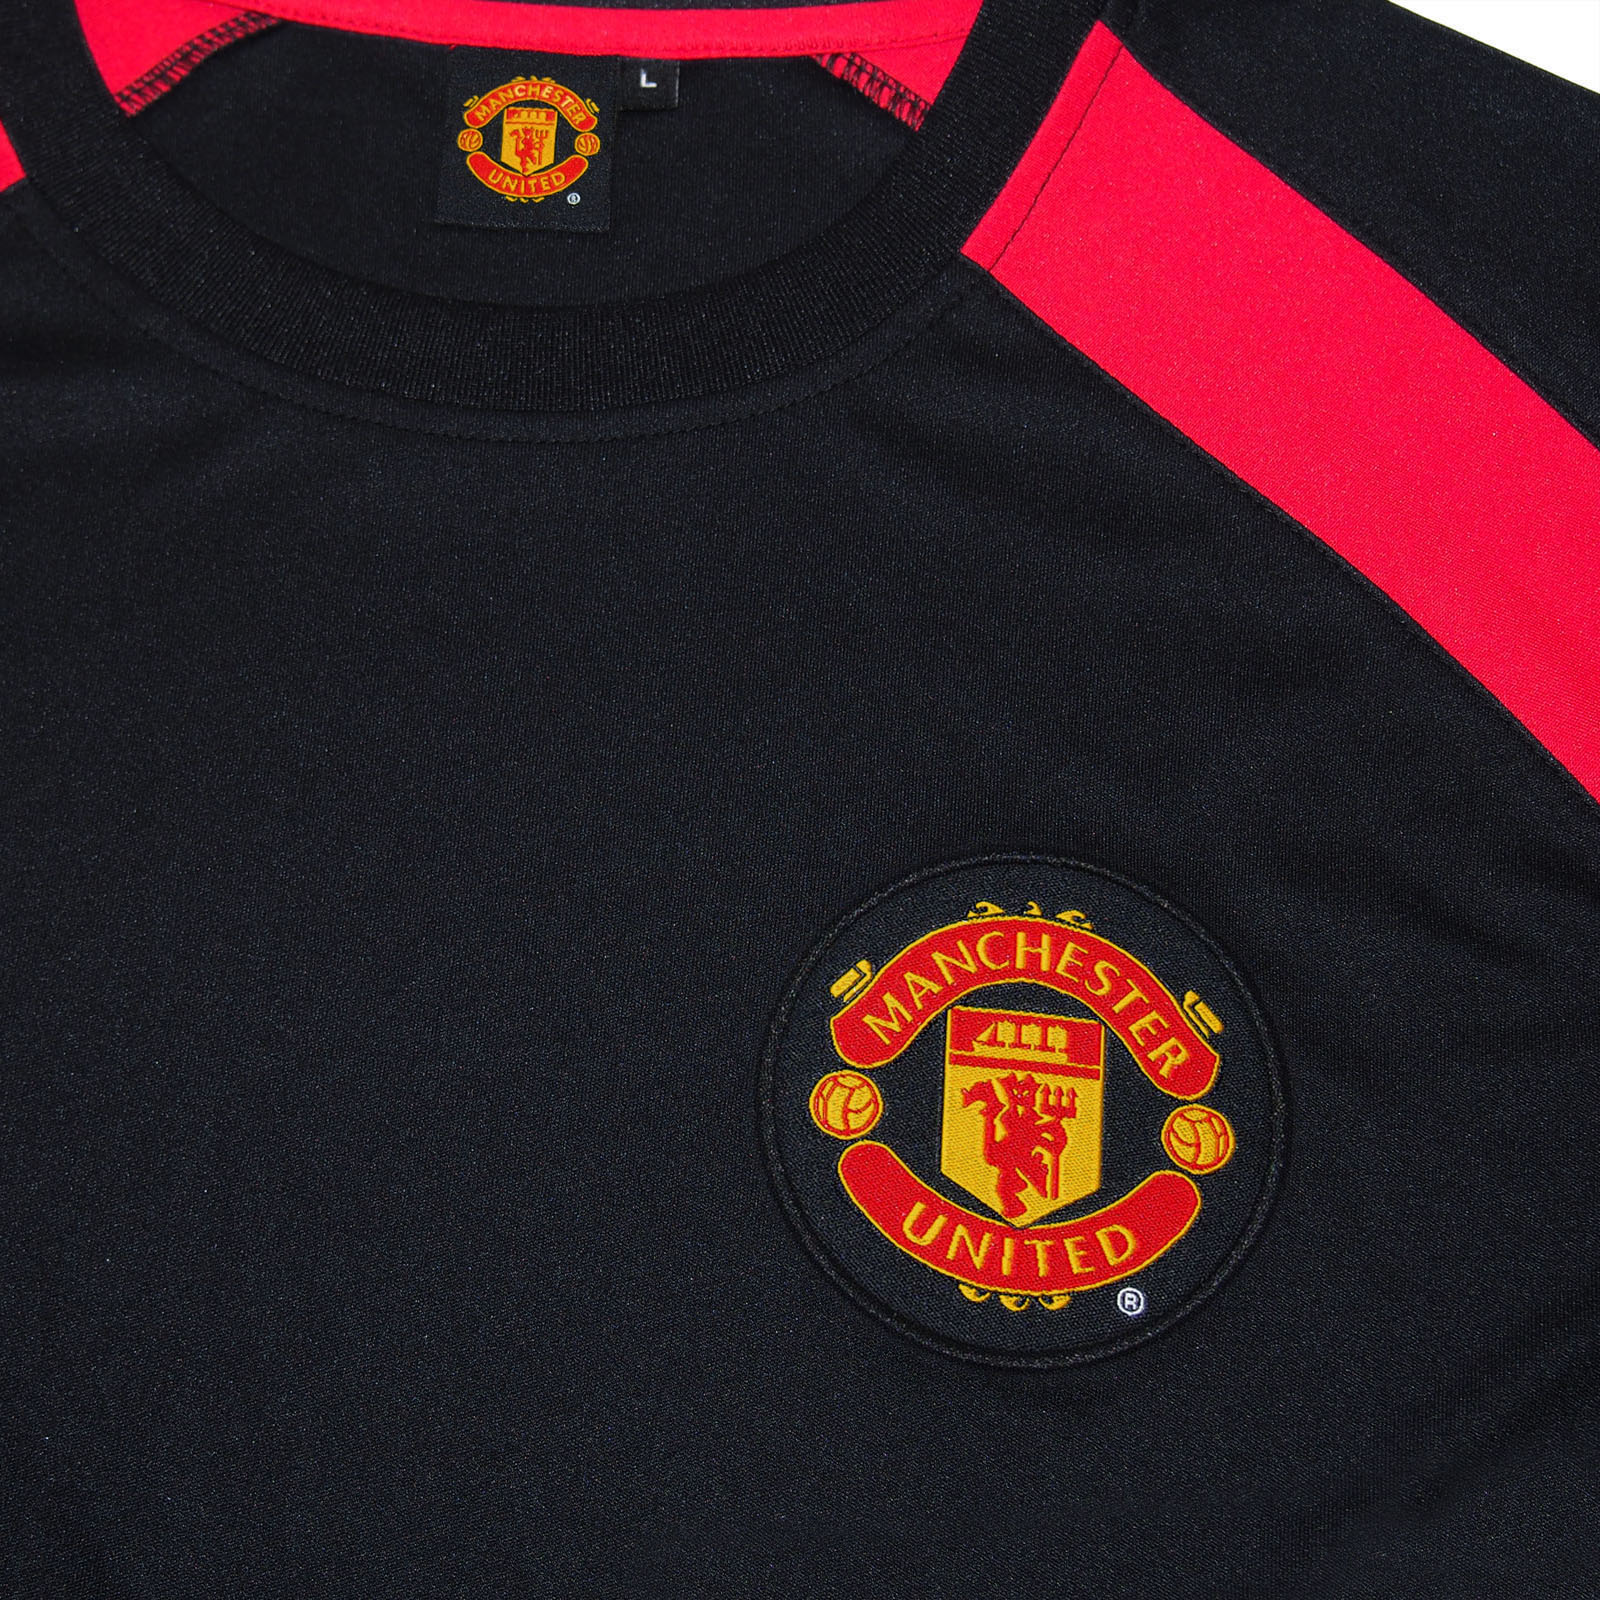 67a2b51ce Manchester United FC Official Boys Poly Training Kit T-shirt Black 8-9 Yrs  MB. About this product. Picture 1 of 3  Picture 2 of 3  Picture 3 of 3